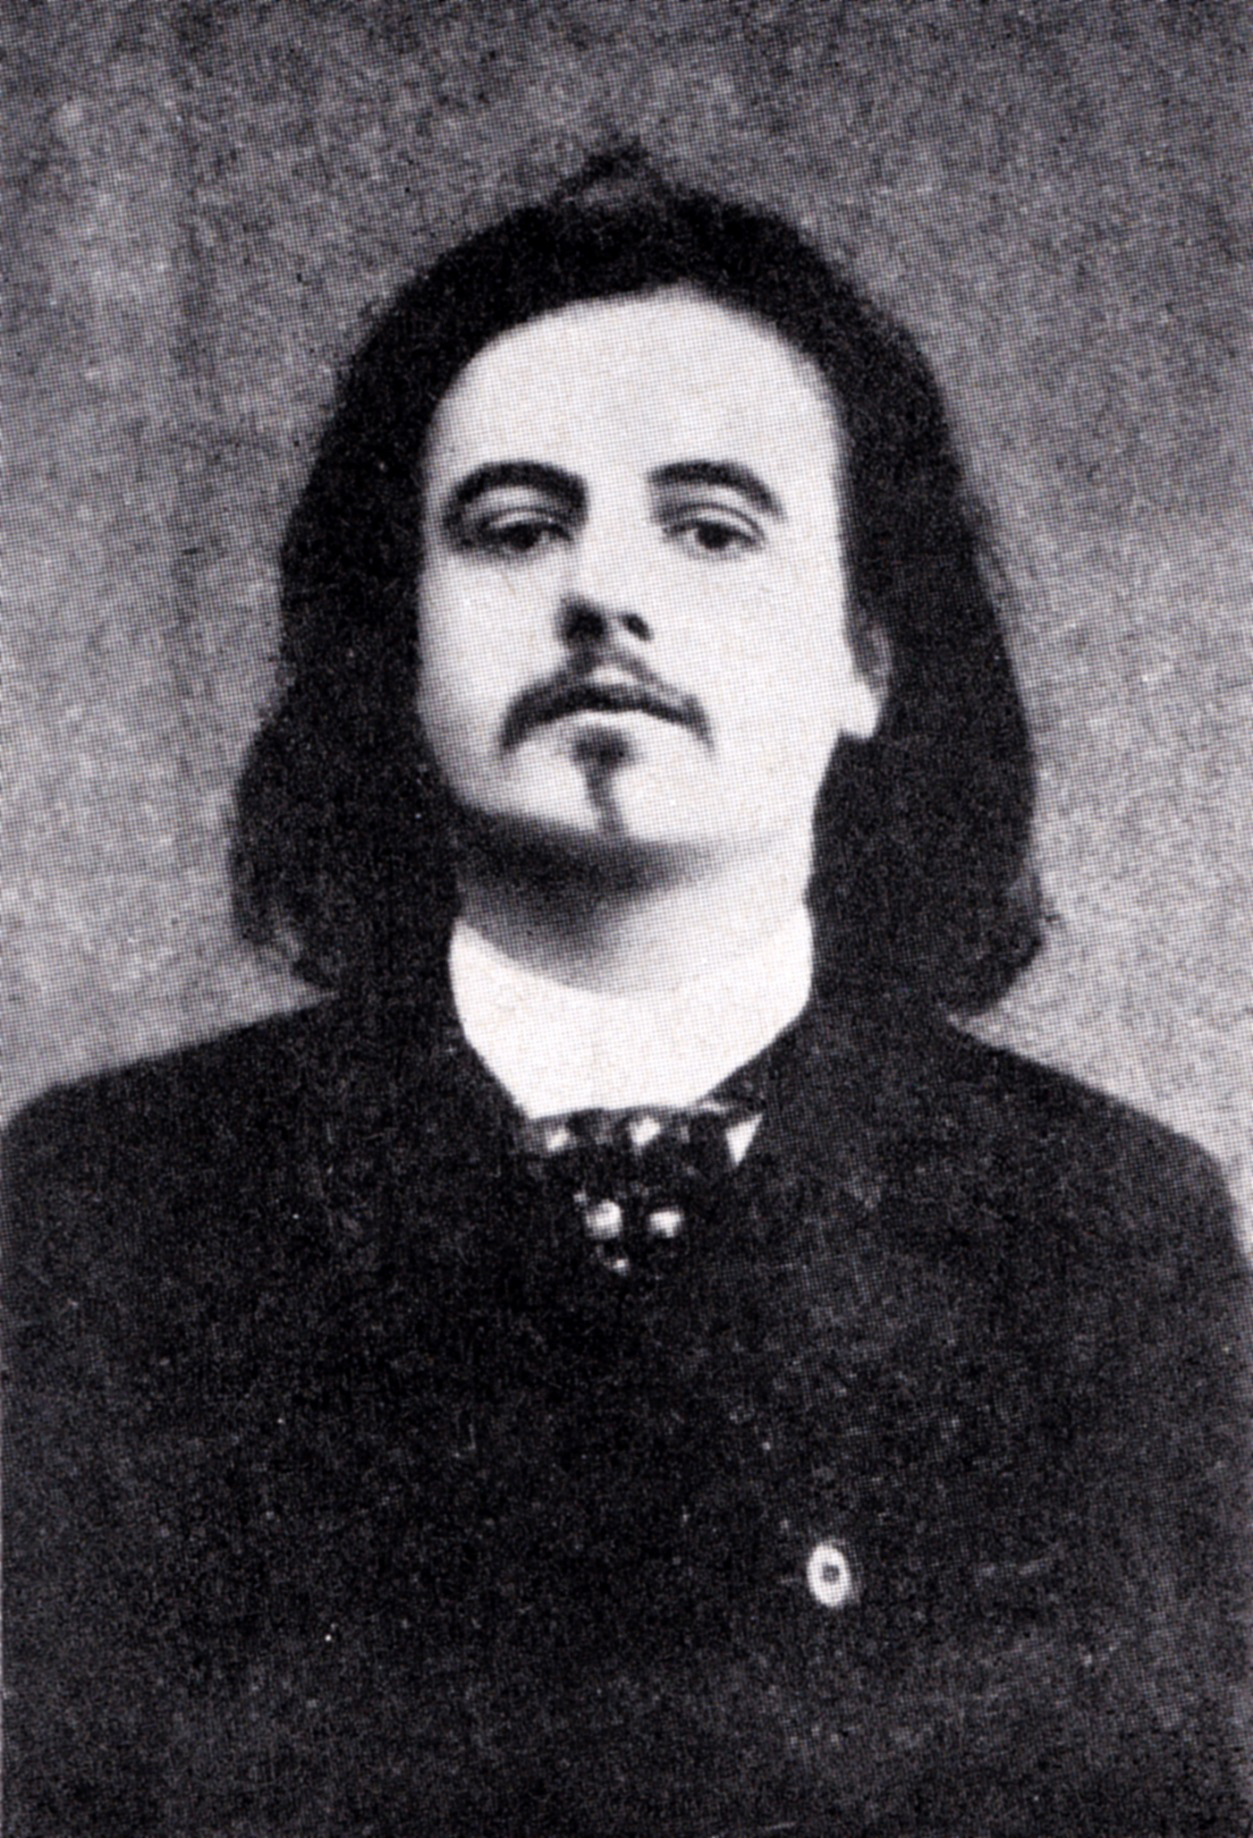 Photograph of Alfred Jarry, attributed to the studio of Nadar, taken around the time of the original performance of Ubu Roi.